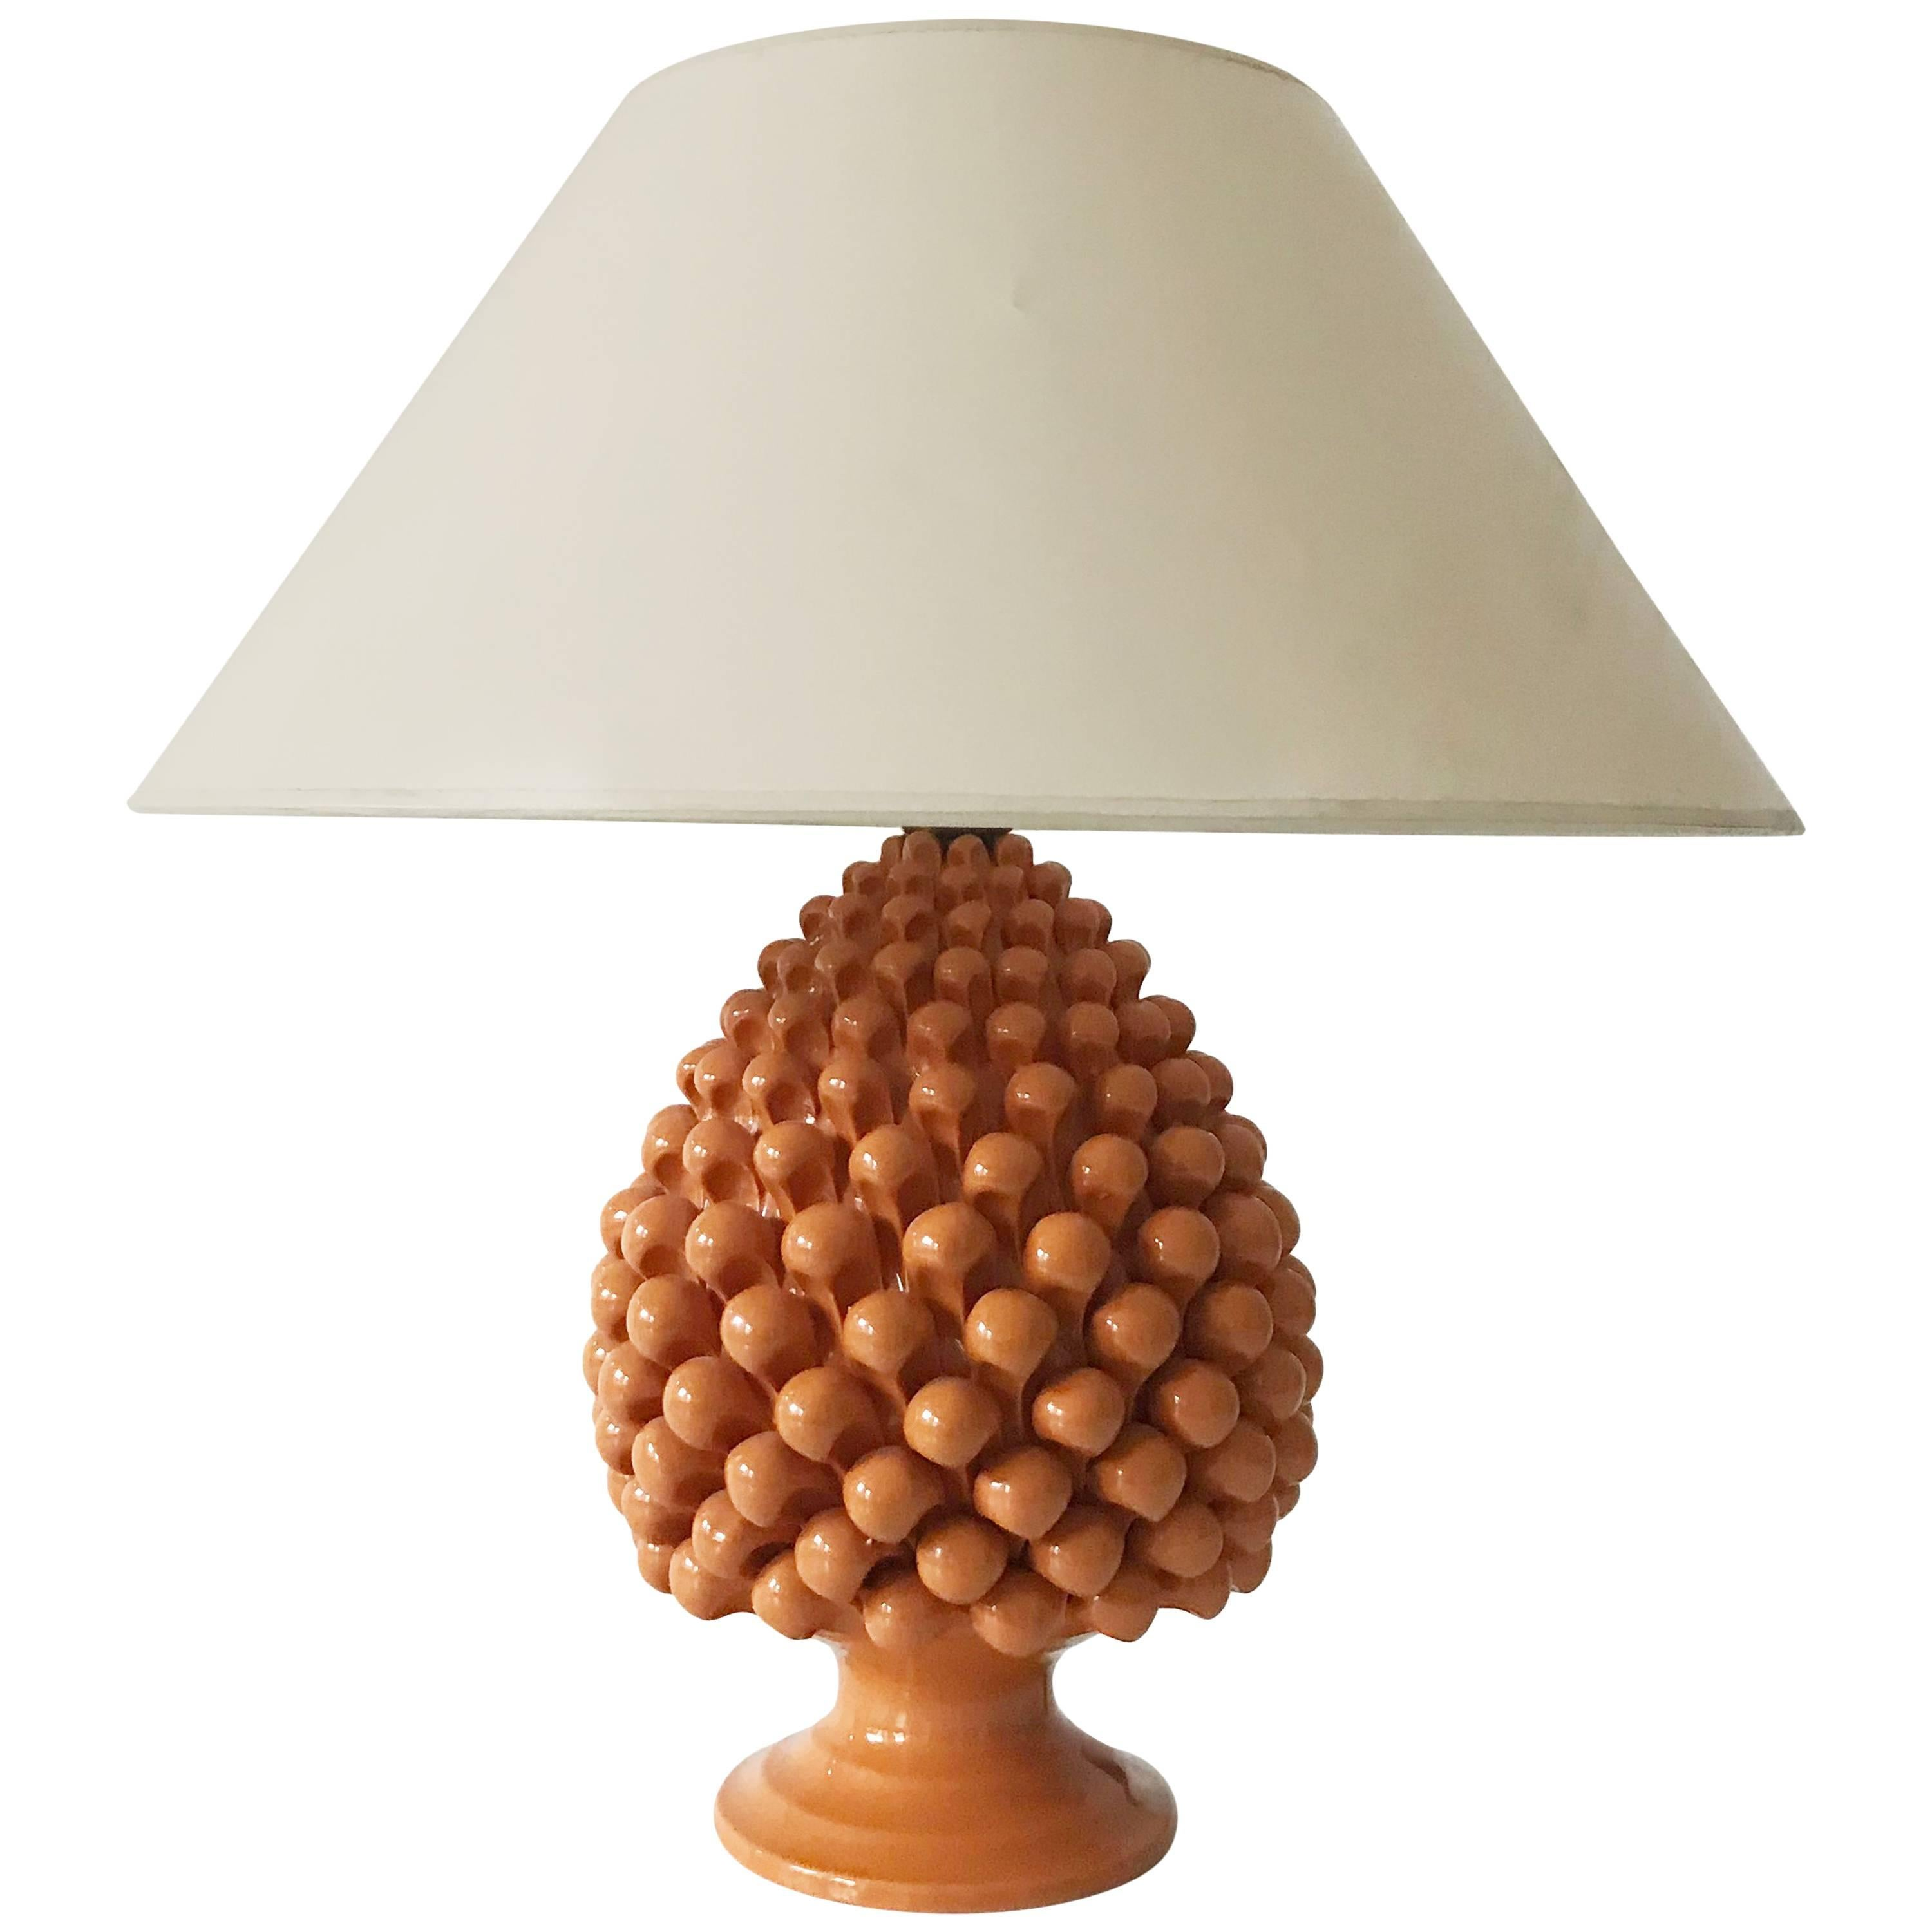 Mid Century Ceramic Pineapple Table Lamp by Marcello Fantoni (attr.) Italy 1970s